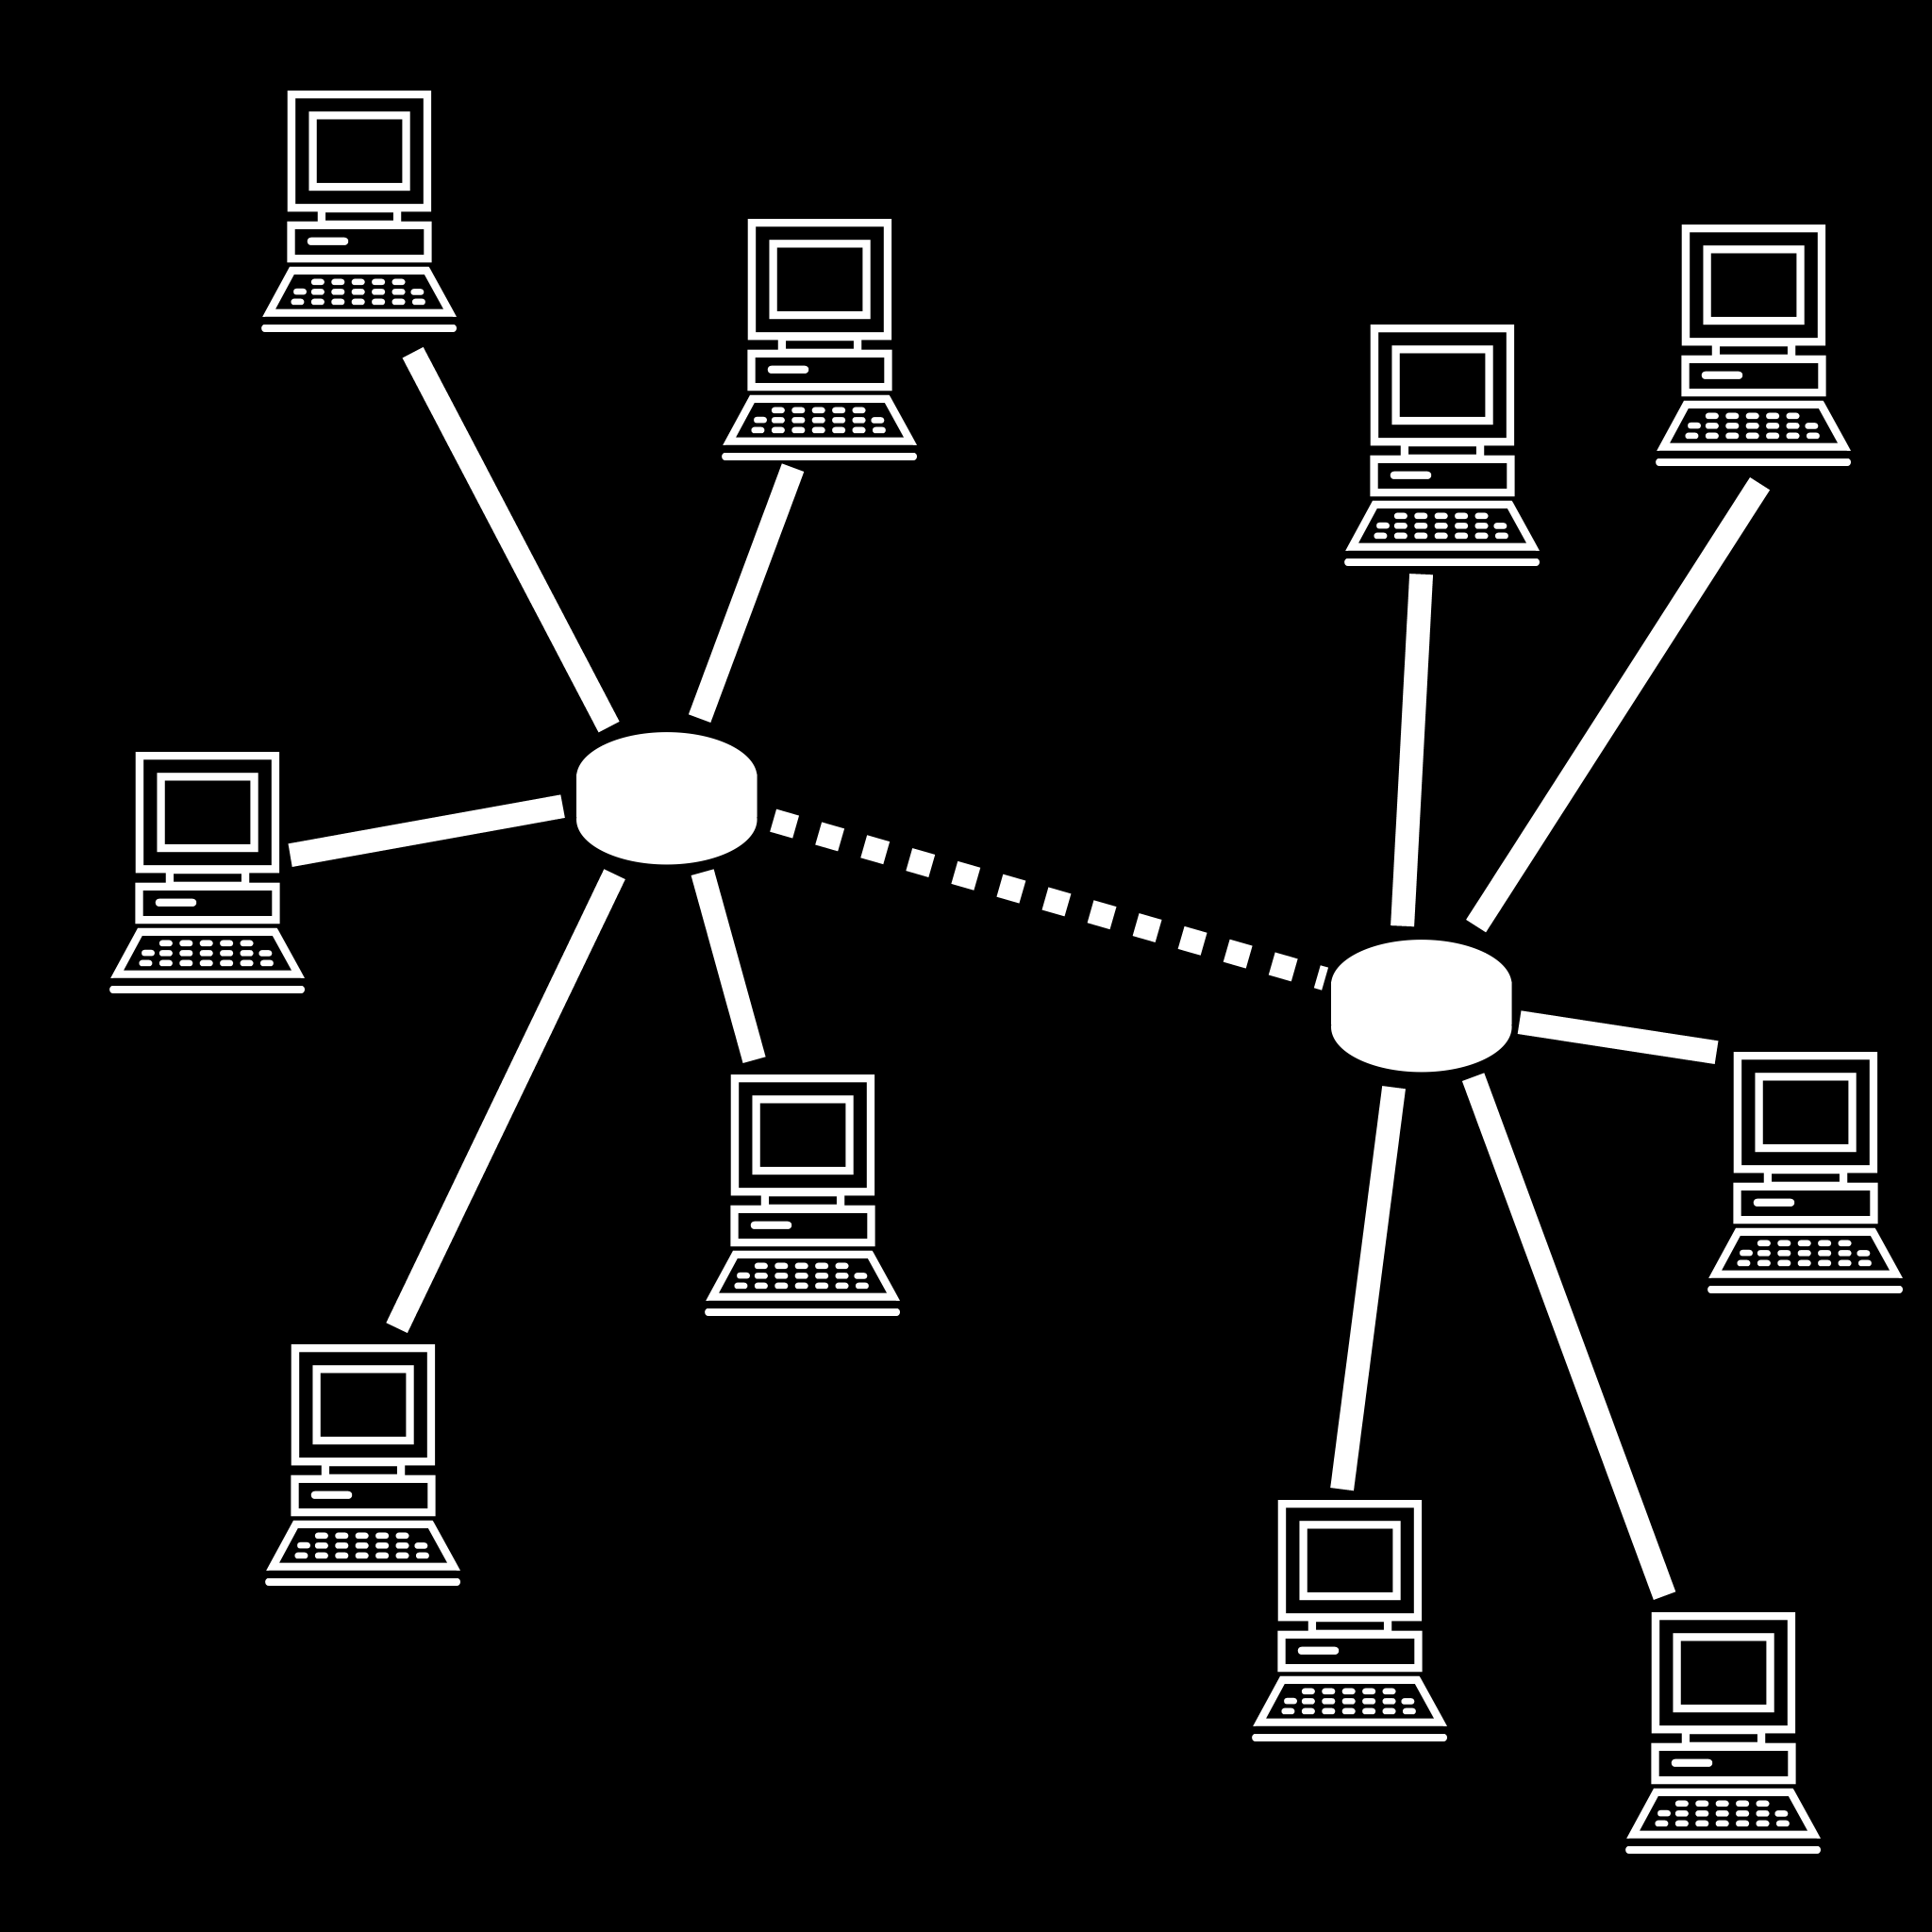 Figure 2.2: Potential for redundant data transmission in a peer-to-peer network. In this figure, there are two clusters of peers, but the clusters are connected by a single slow link.